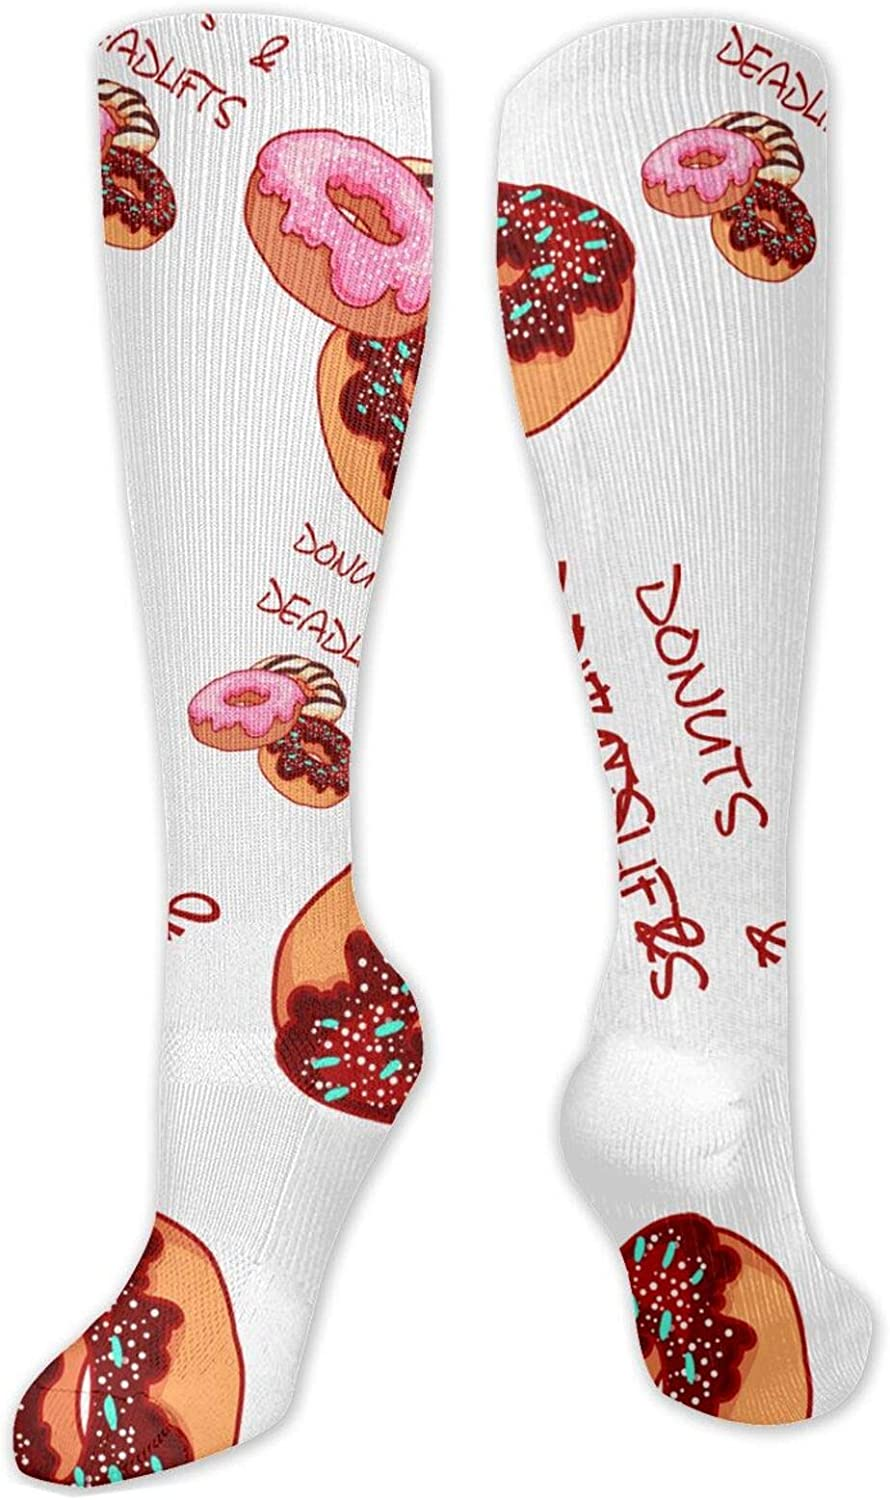 NiYoung Unisex Comfortable Athletic Socks Funny Funky Novelty Socks Over The Calf Tube Socks for Running, Athletic, Pregnancy and Travel (Donuts and Deadlifts)